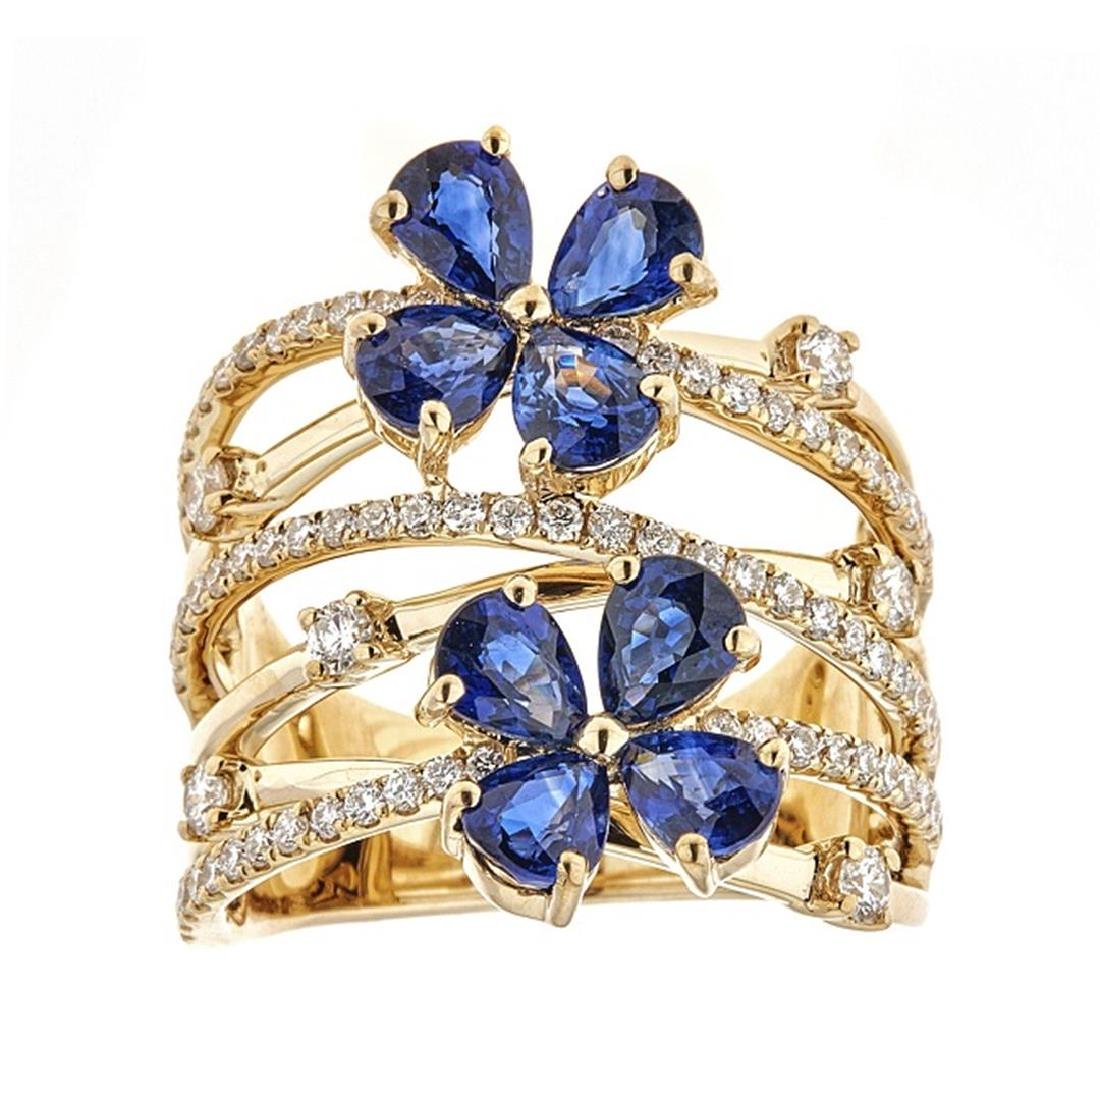 3.18 ctw Sapphire and Diamond Ring - 18KT Yellow Gold